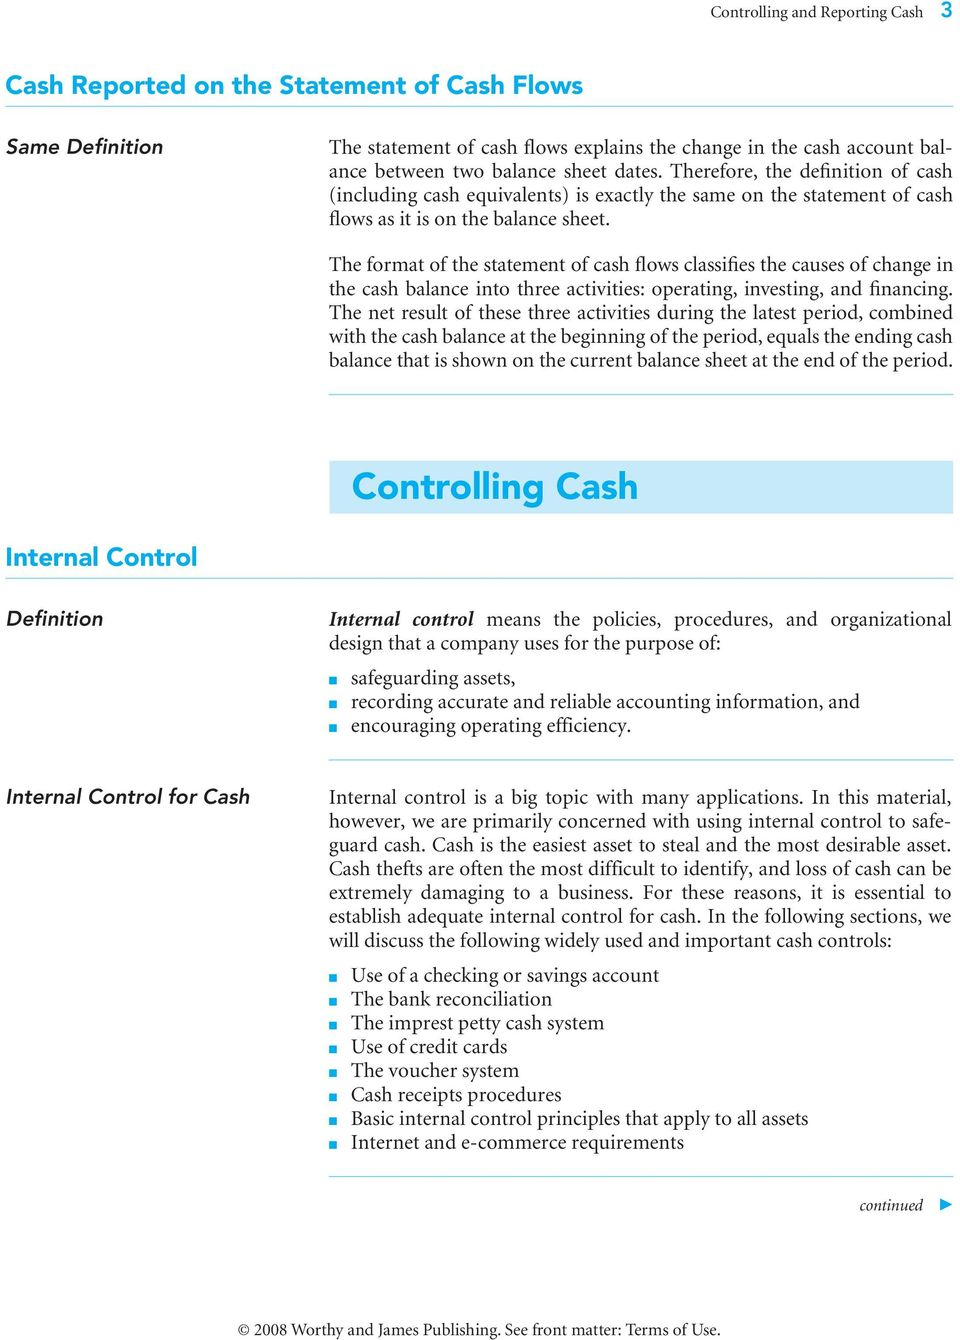 The format of the statement of cash flows classifies the causes of change in the cash balance into three activities: operating, investing, and financing.